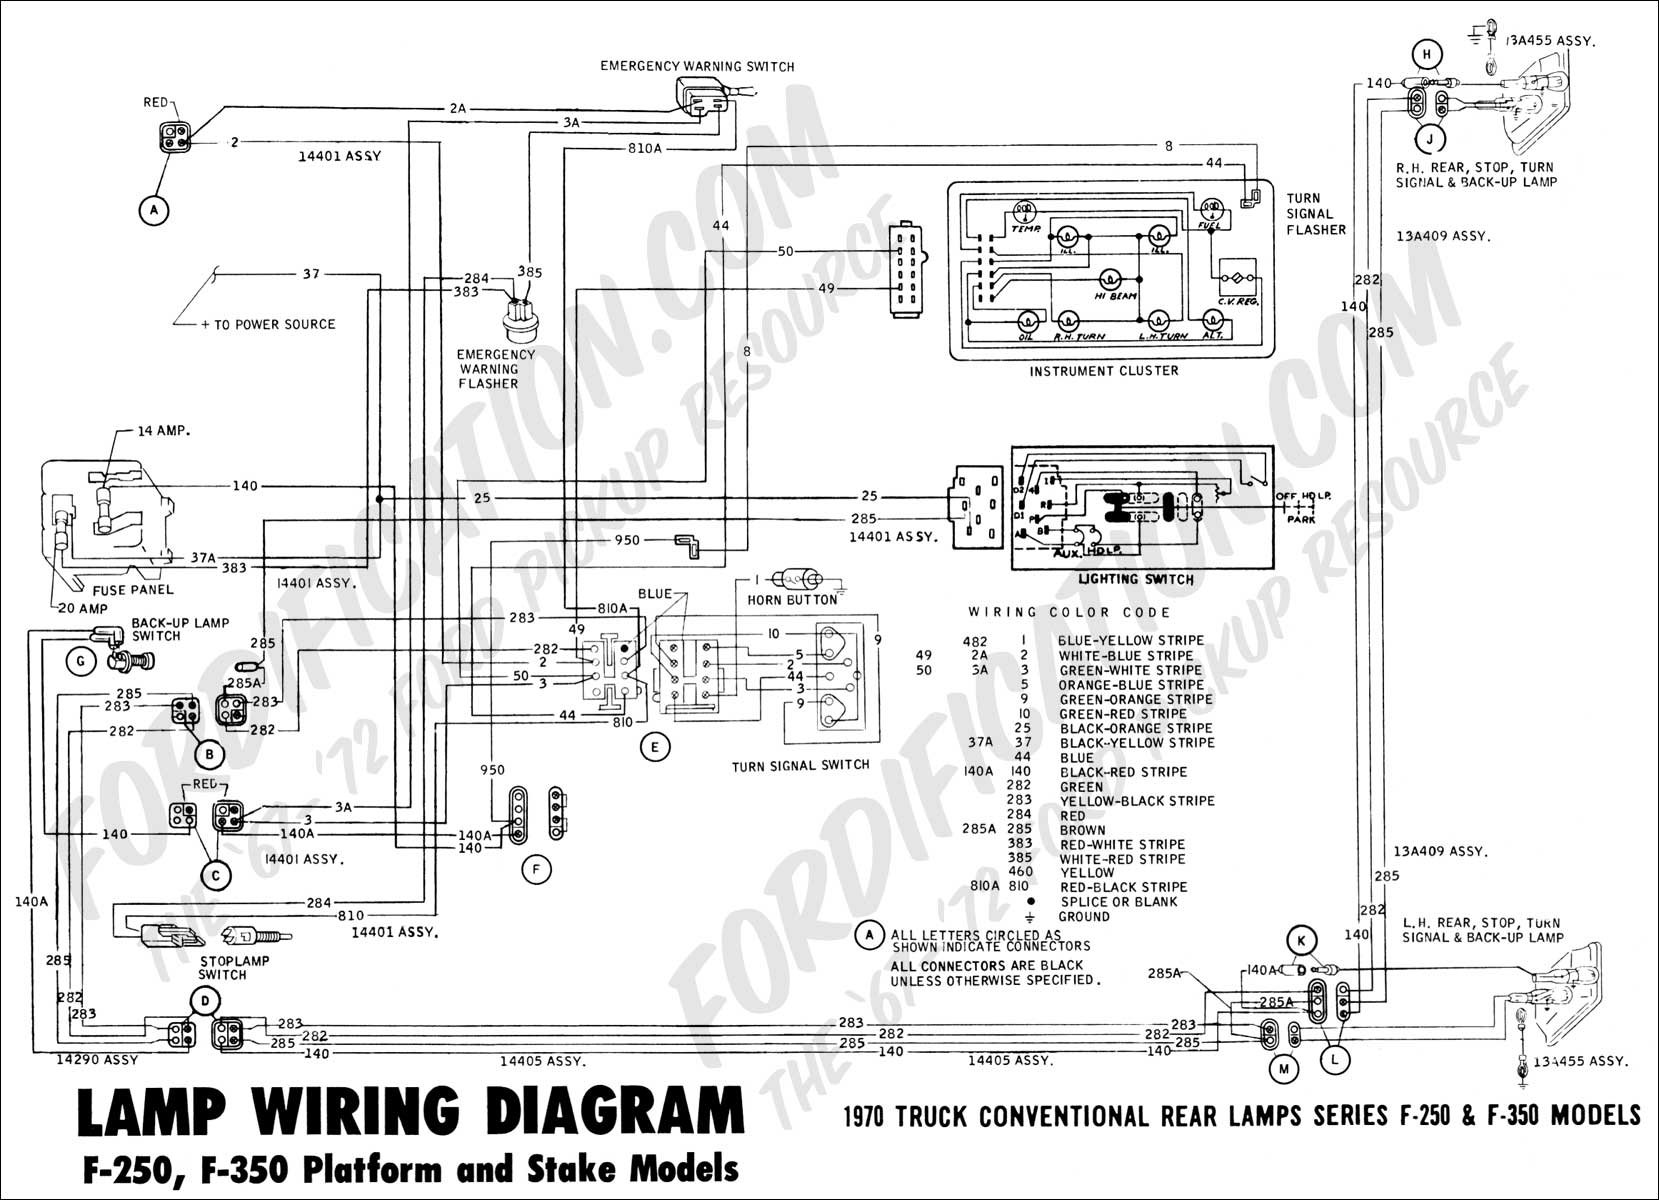 06 F250 Trailer Wire Diagram -Reverse Polarity Contactor Wiring Diagram |  Begeboy Wiring Diagram SourceBegeboy Wiring Diagram Source